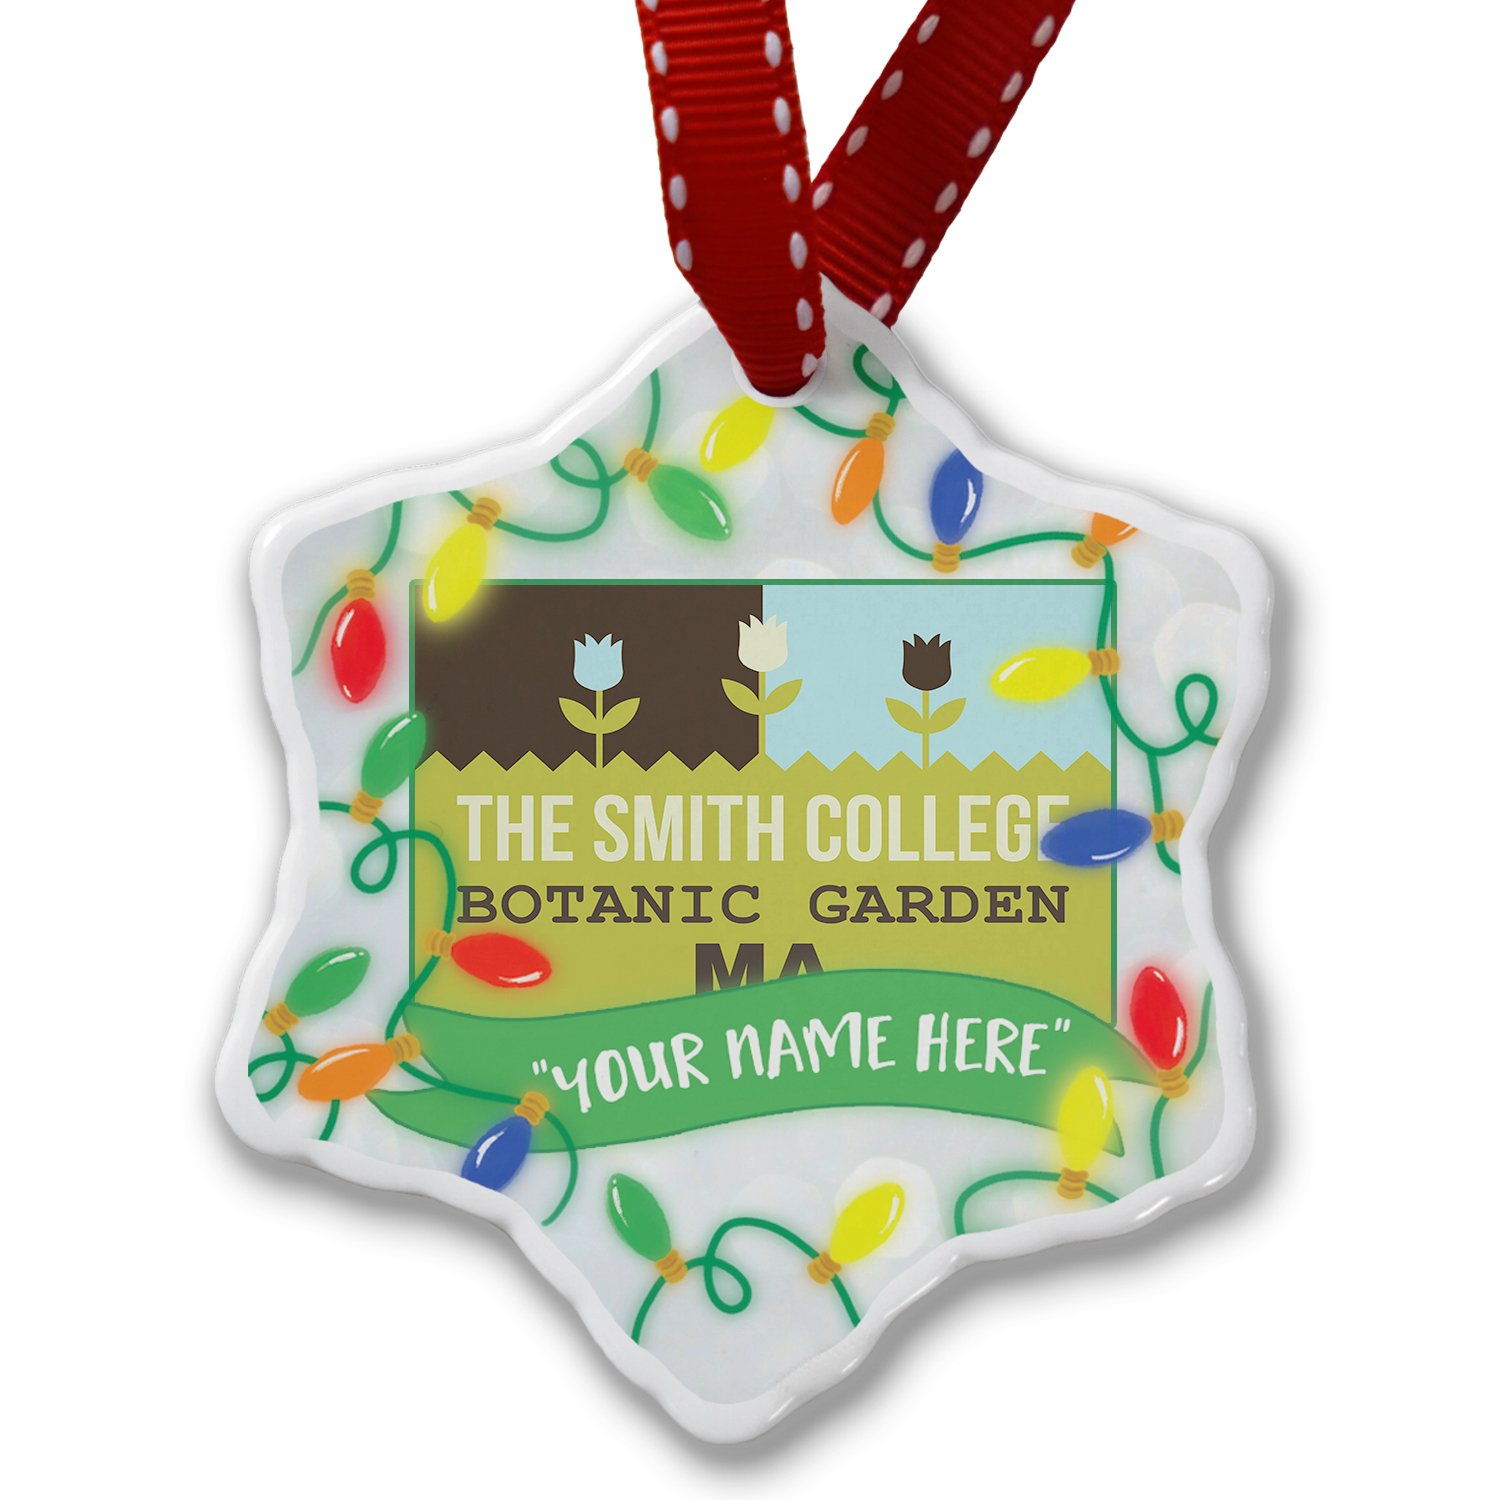 Personalized Name Christmas Ornament, US Gardens The Smith College Botanic Garden - MA NEONBLOND by NEONBLOND (Image #1)